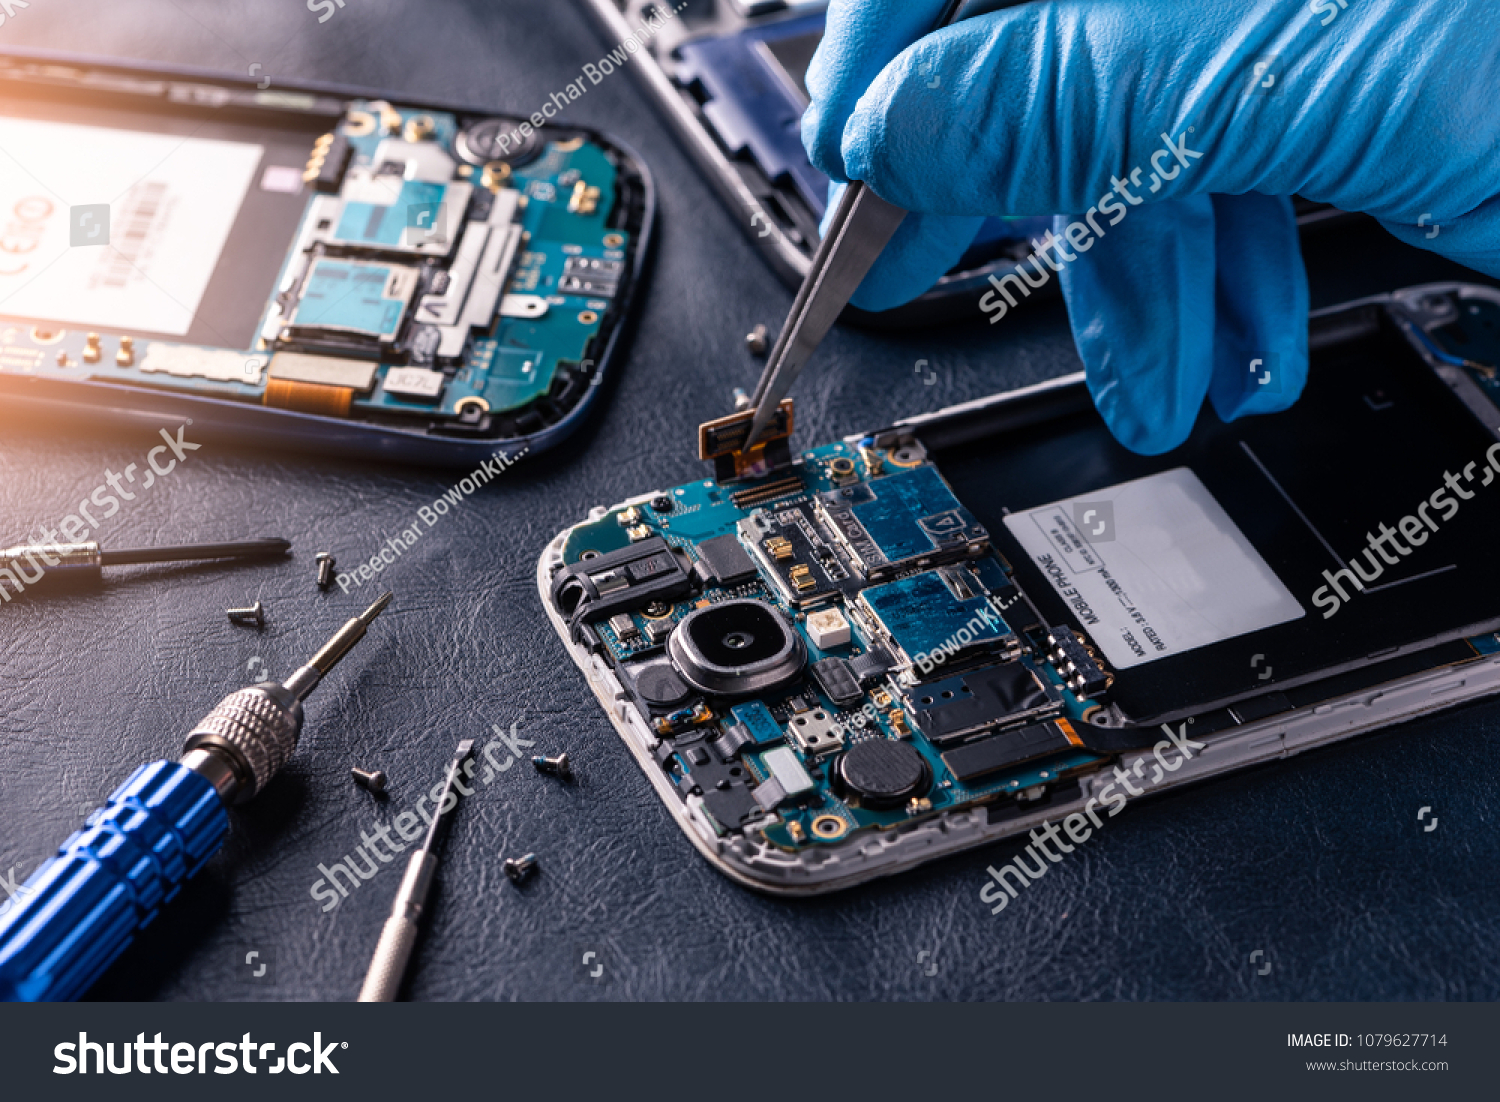 The asian technician repairing the smartphone's motherboard in the lab with copy space. the concept of computer hardware, mobile phone, electronic, repairing, upgrade and technology. #1079627714